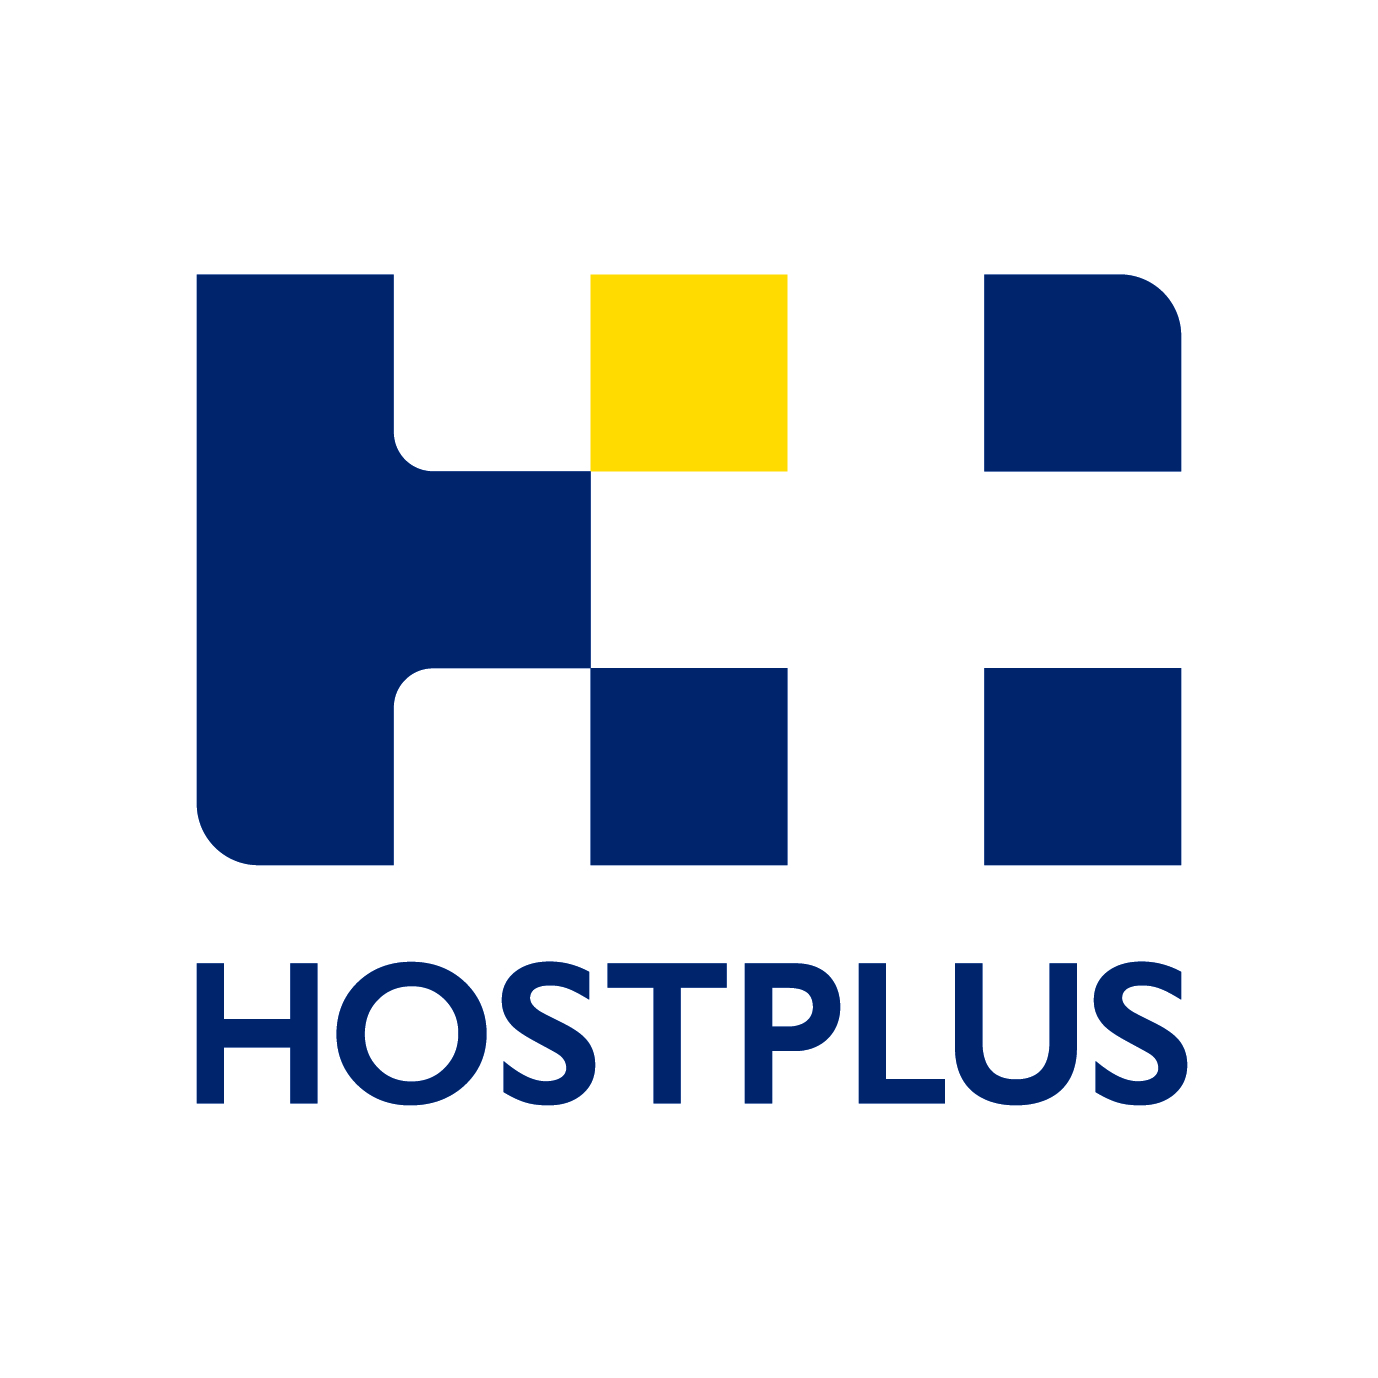 How Hostplus is responding to COVID-19